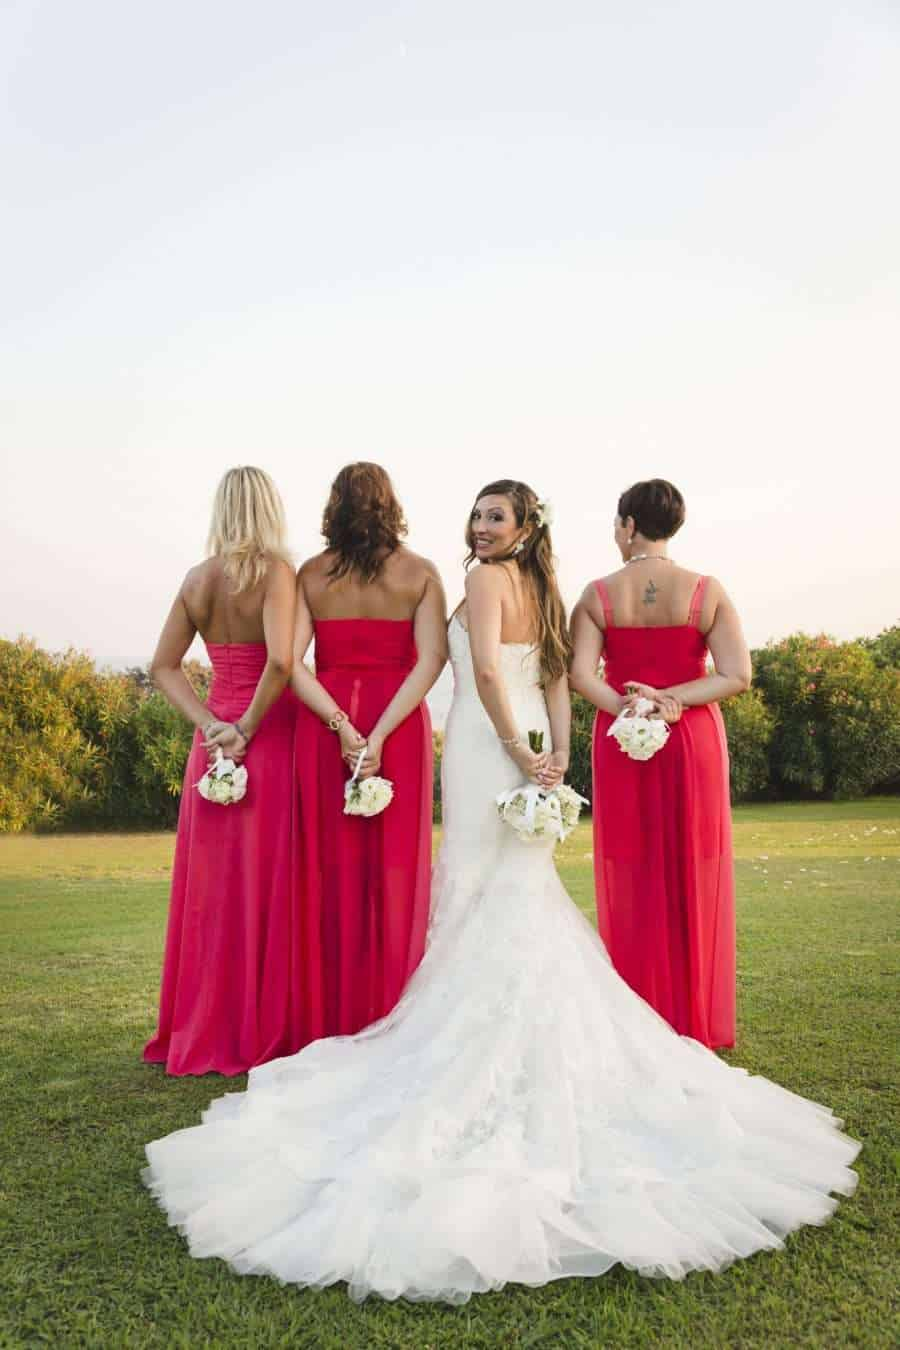 Outdoors Indoors wedding - the bride with bridesmaid